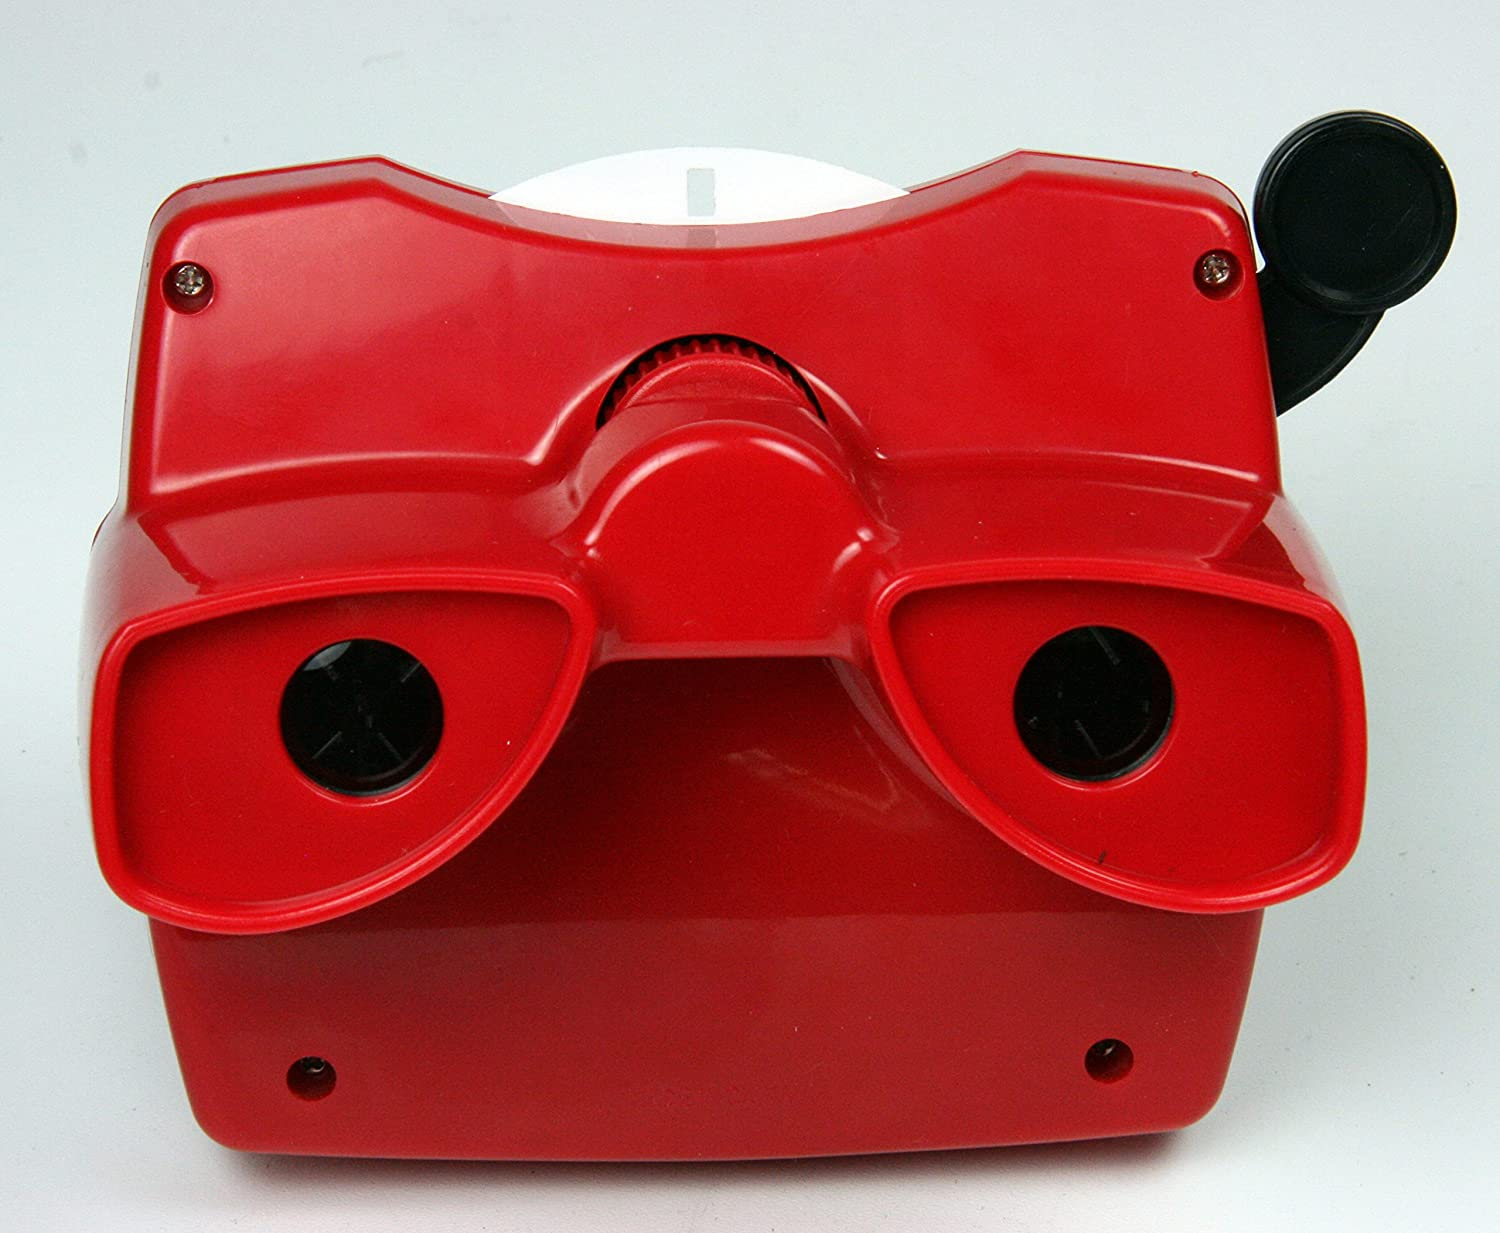 3D Reel ViewFinder Focusing Viewer for ViewMaster Reels by 3Dstereo ViewMaster